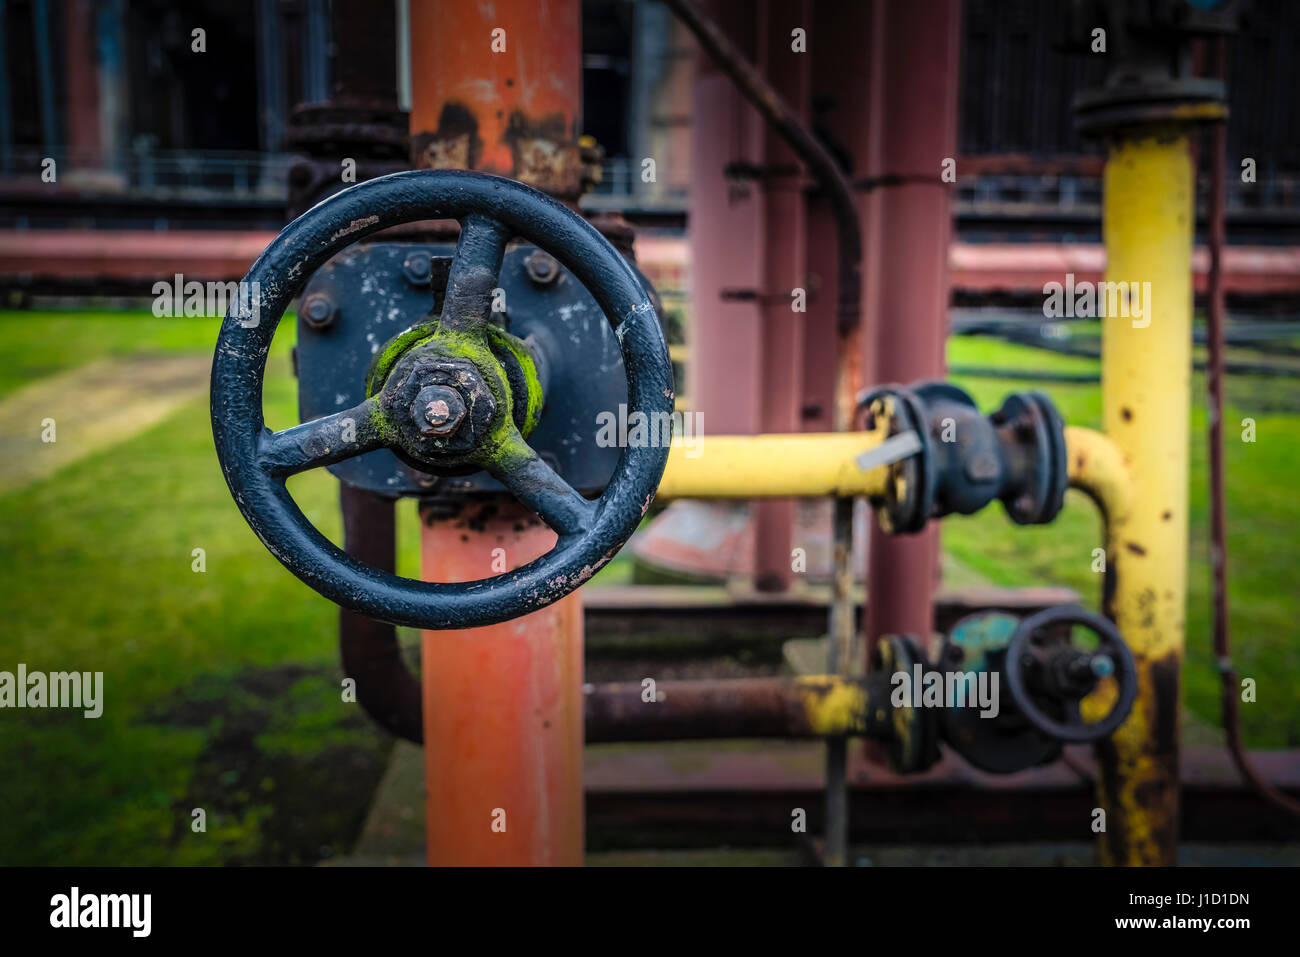 An old valve, which belongs to the coke oven plant of Zollverein in Essen, Germany, which is an UNESCO World Heritage - Stock Image